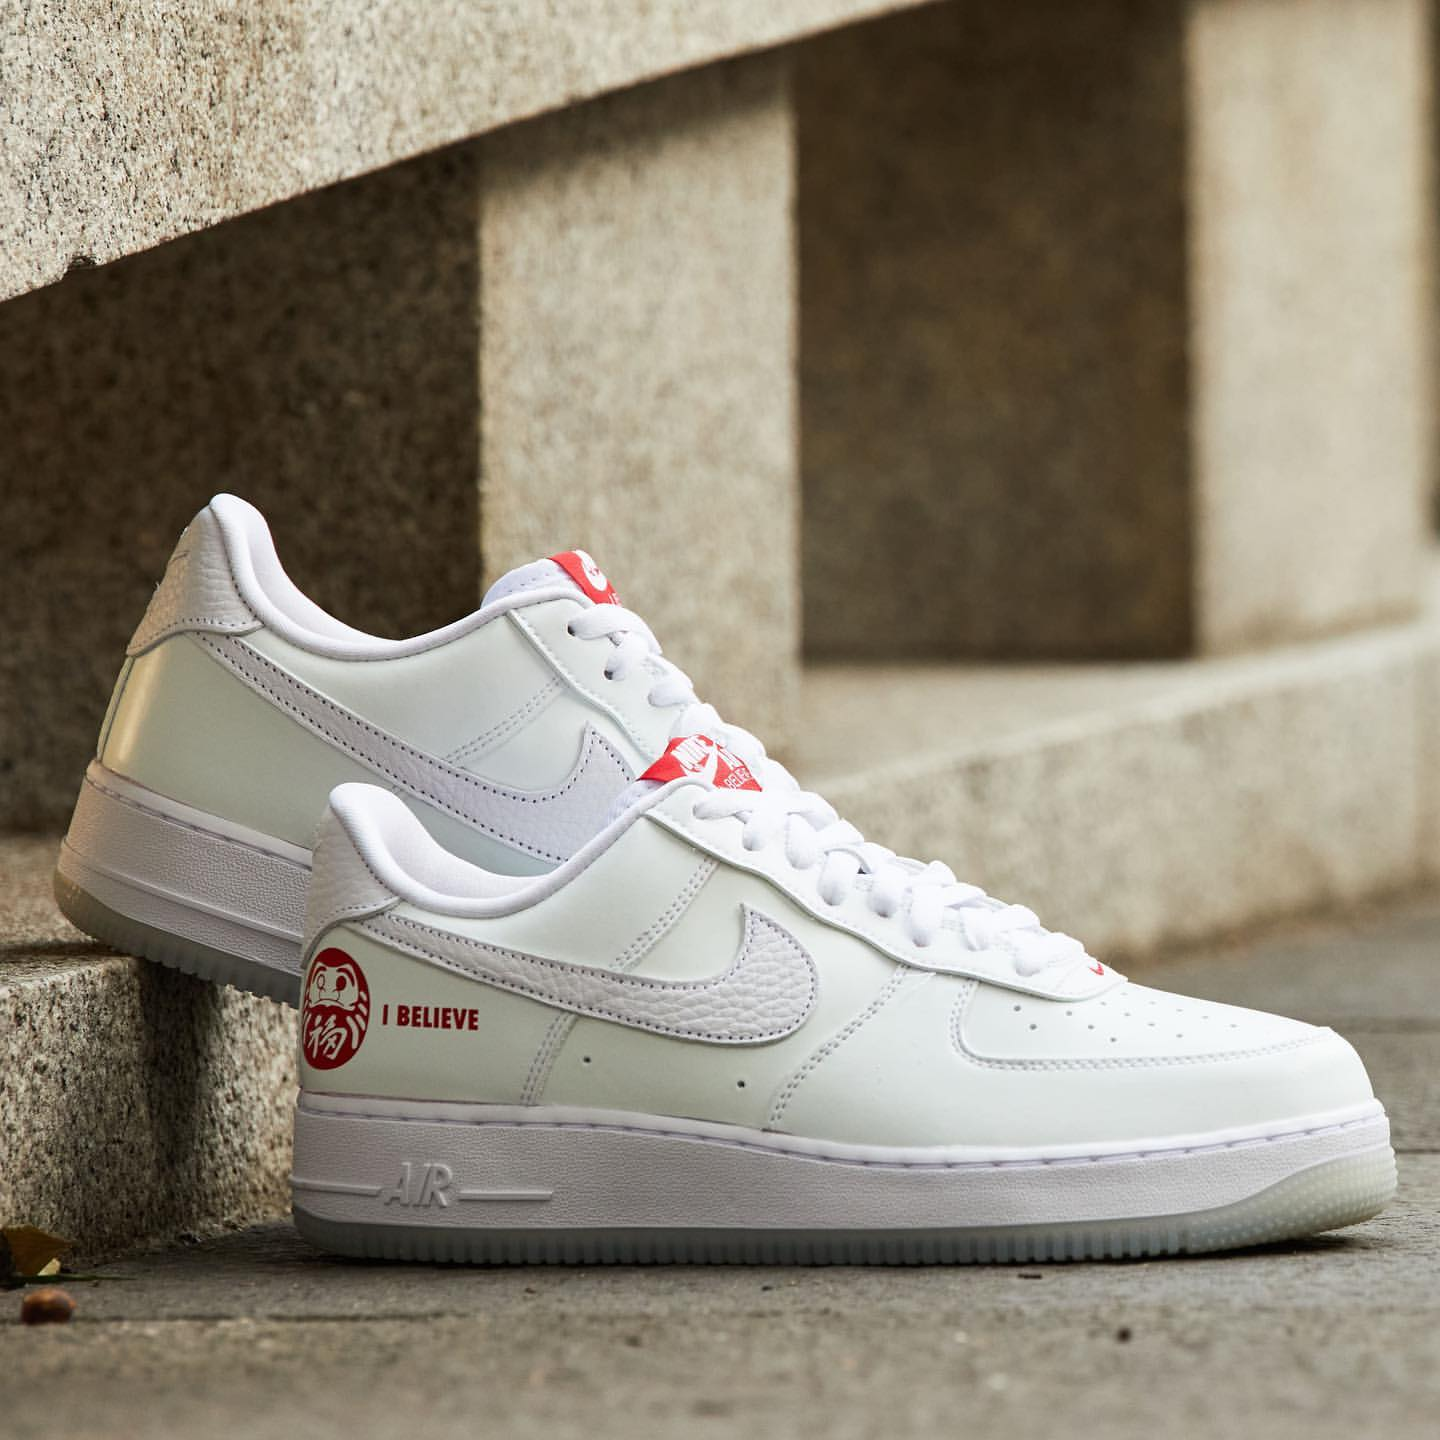 NIKE AIR FORCE 1 '07 PRM I BELIEVE DARUMA DD9941-100